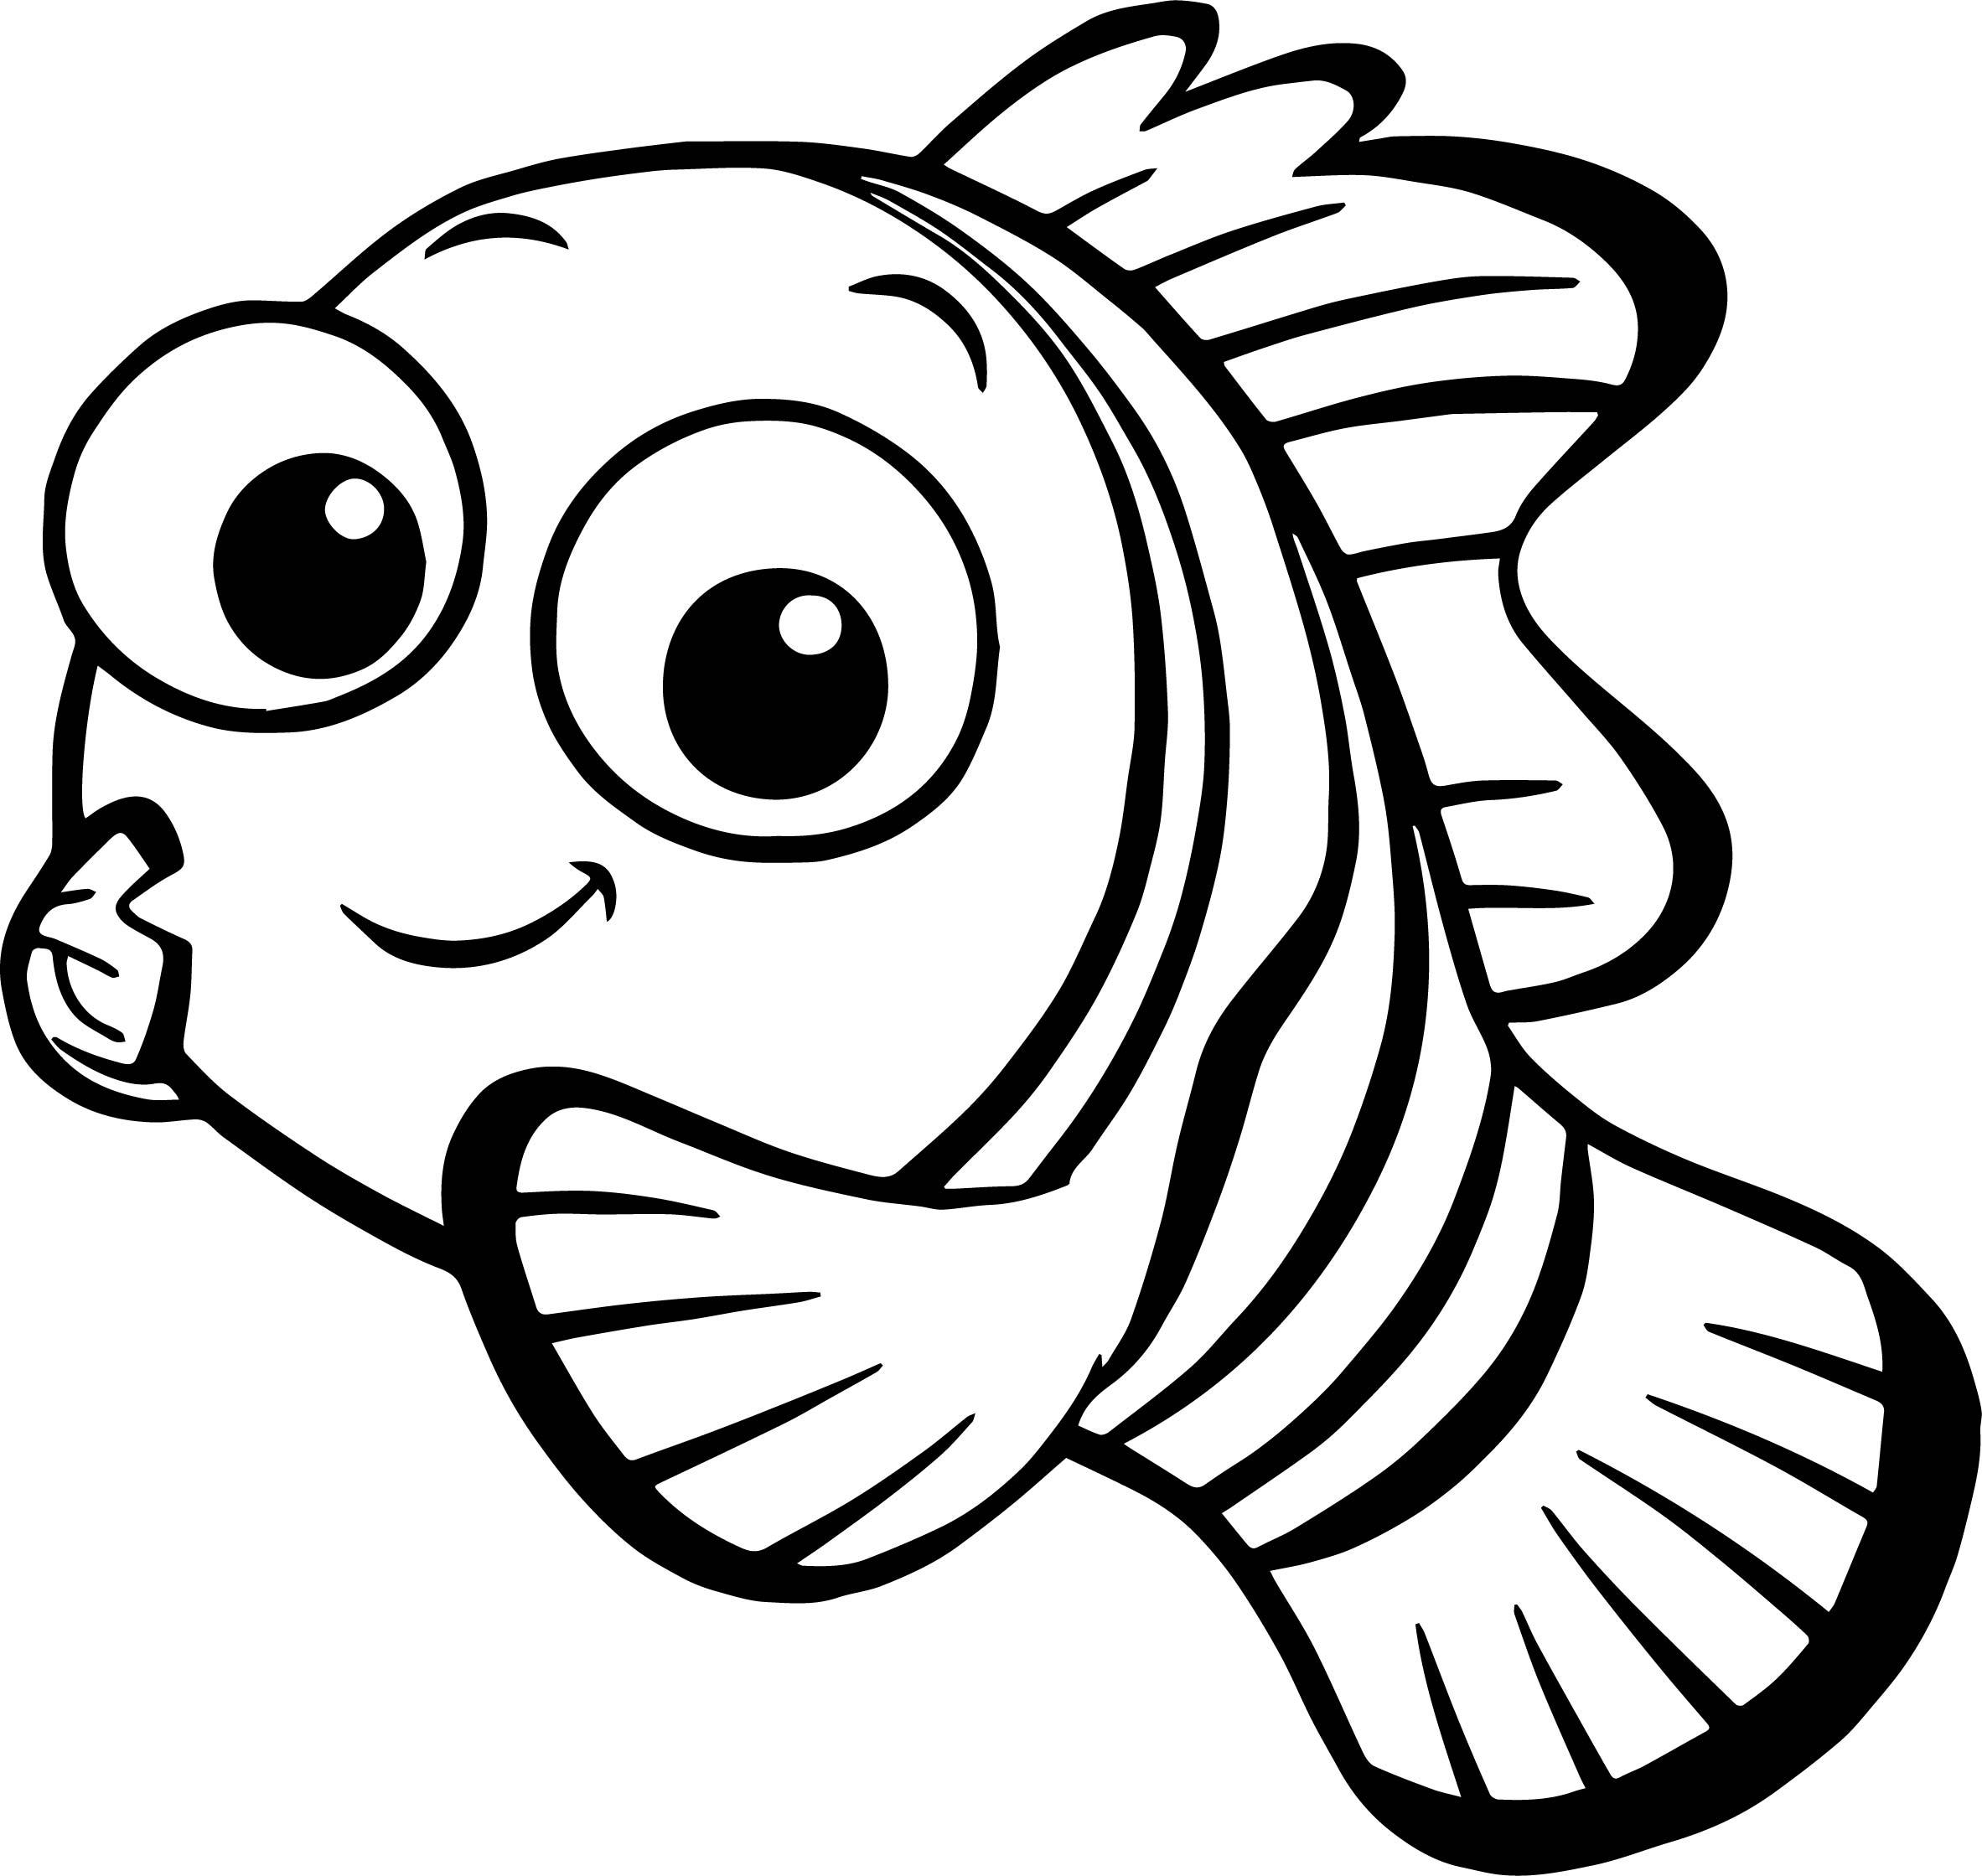 Disney Finding Nemo Fish Black And White Clipart.